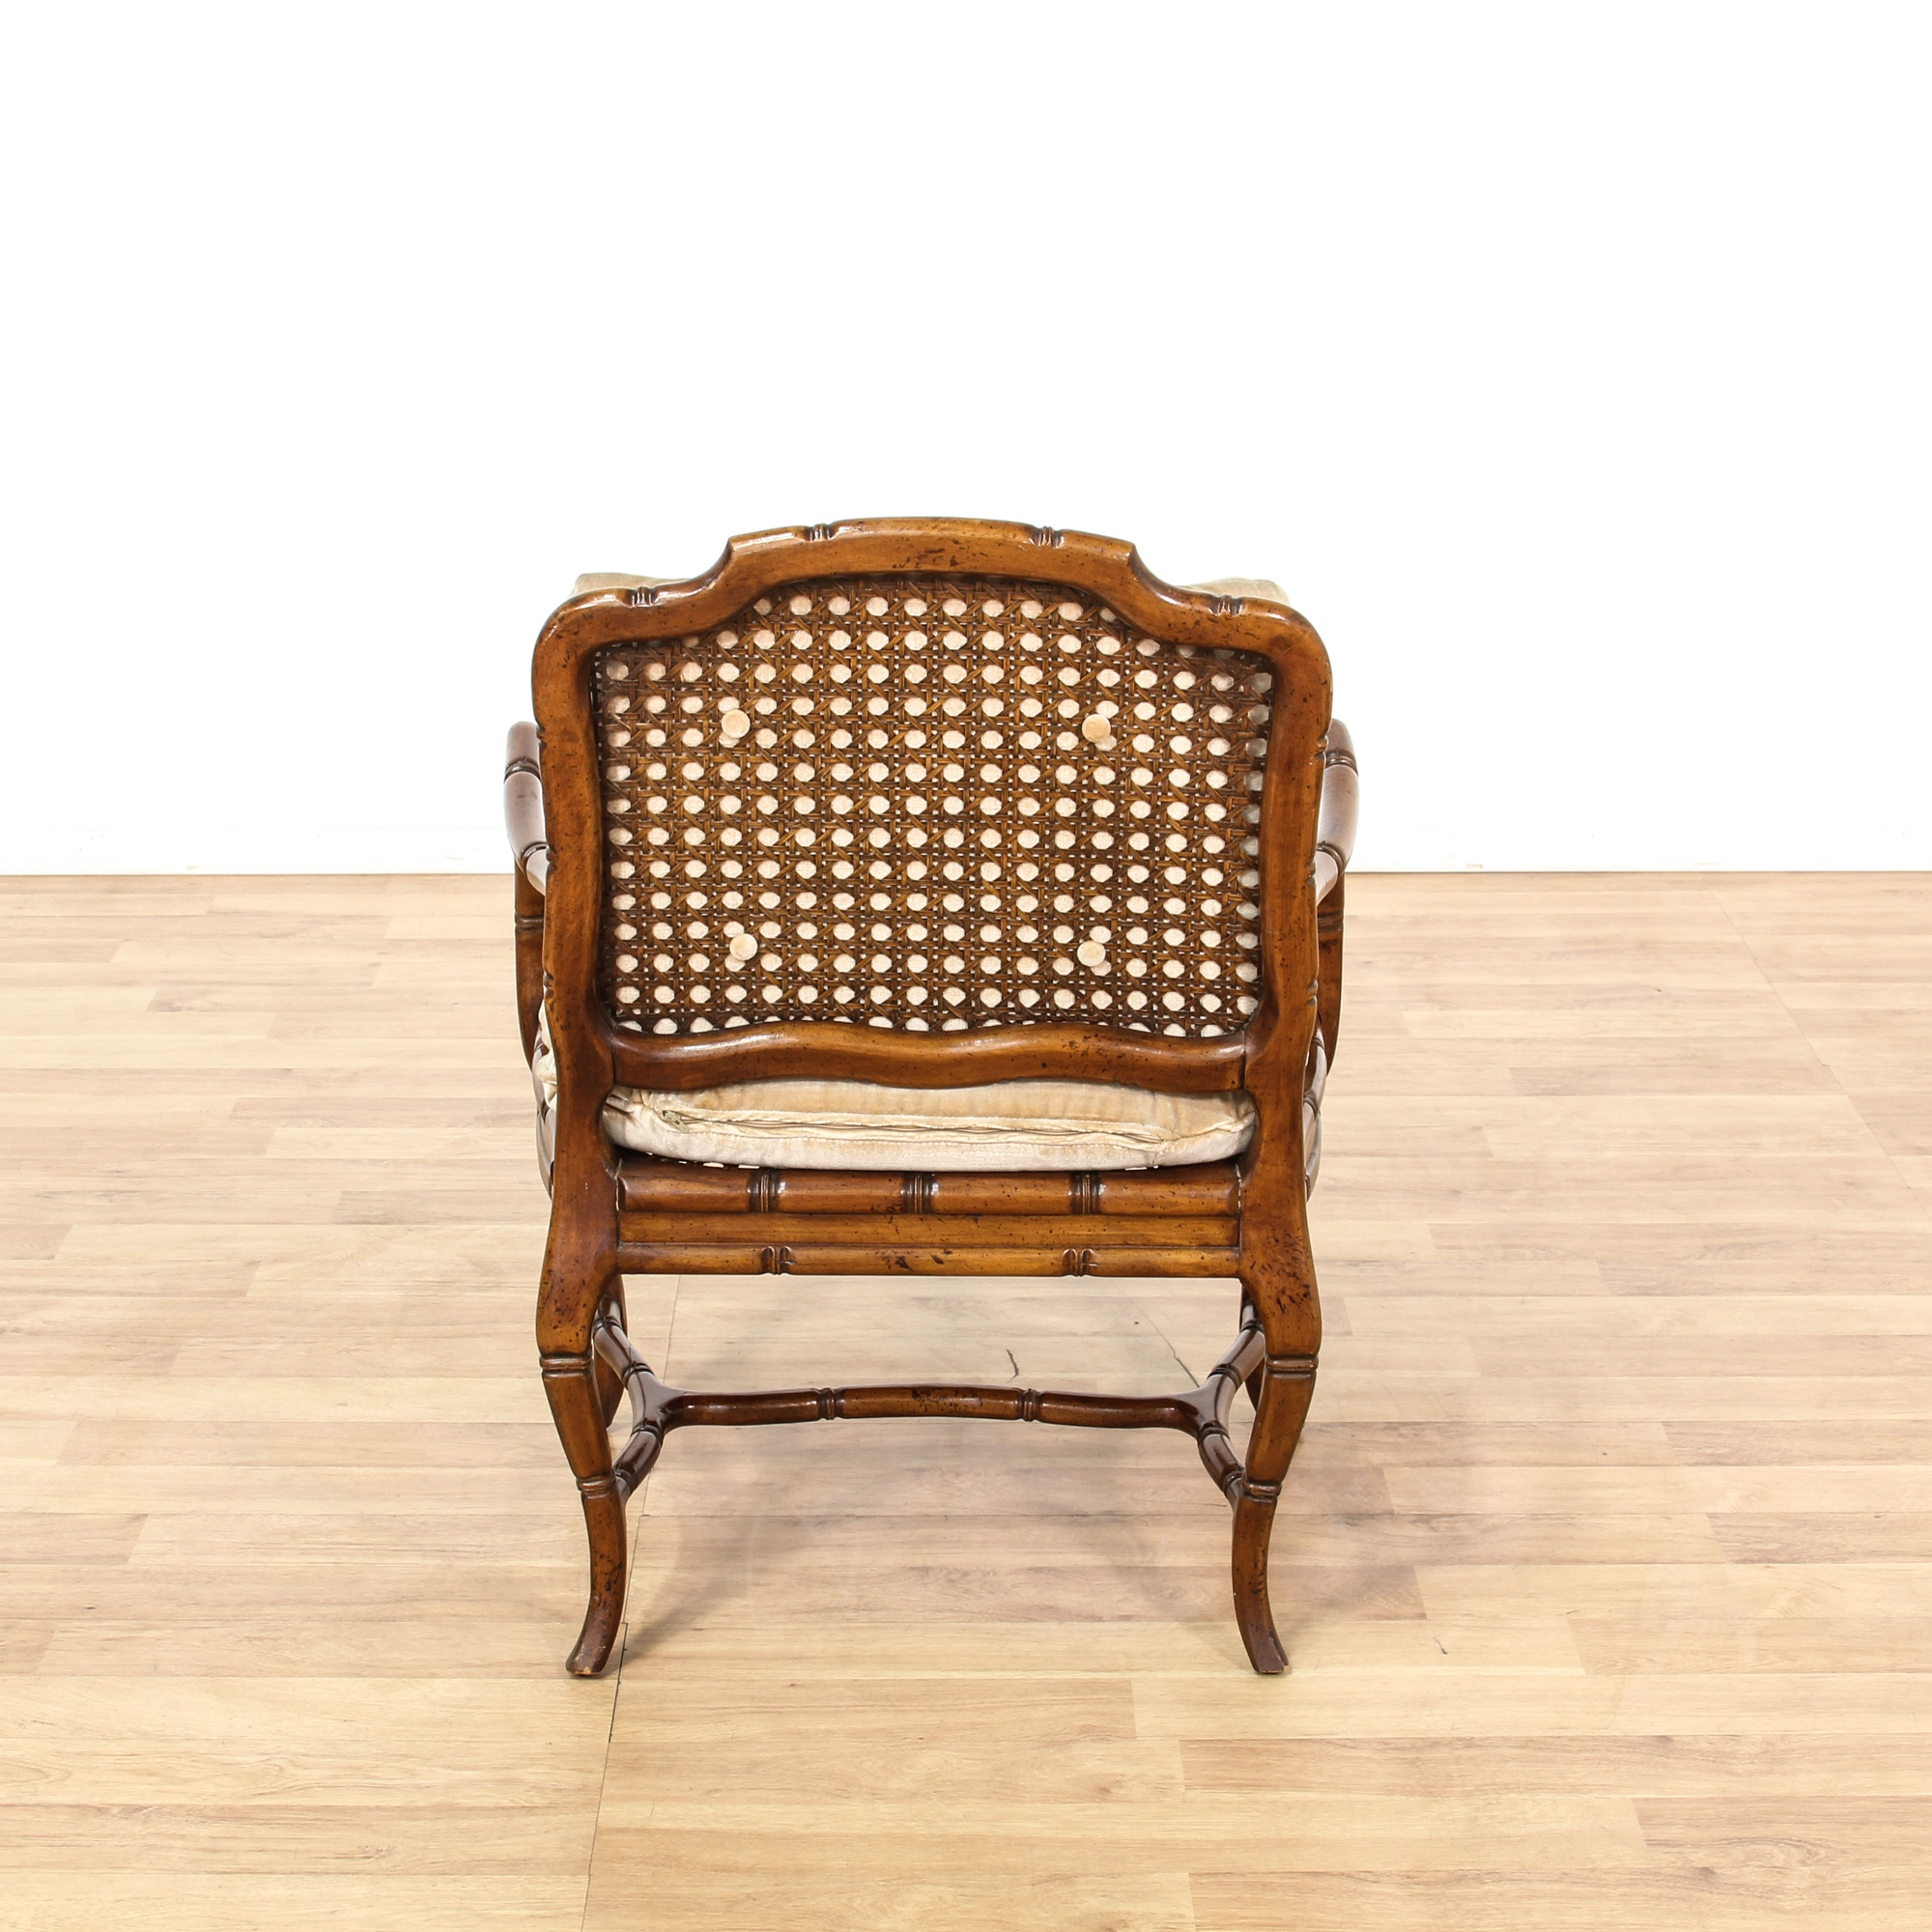 Antique French Bamboo Amp Wicker Chair Loveseat Vintage